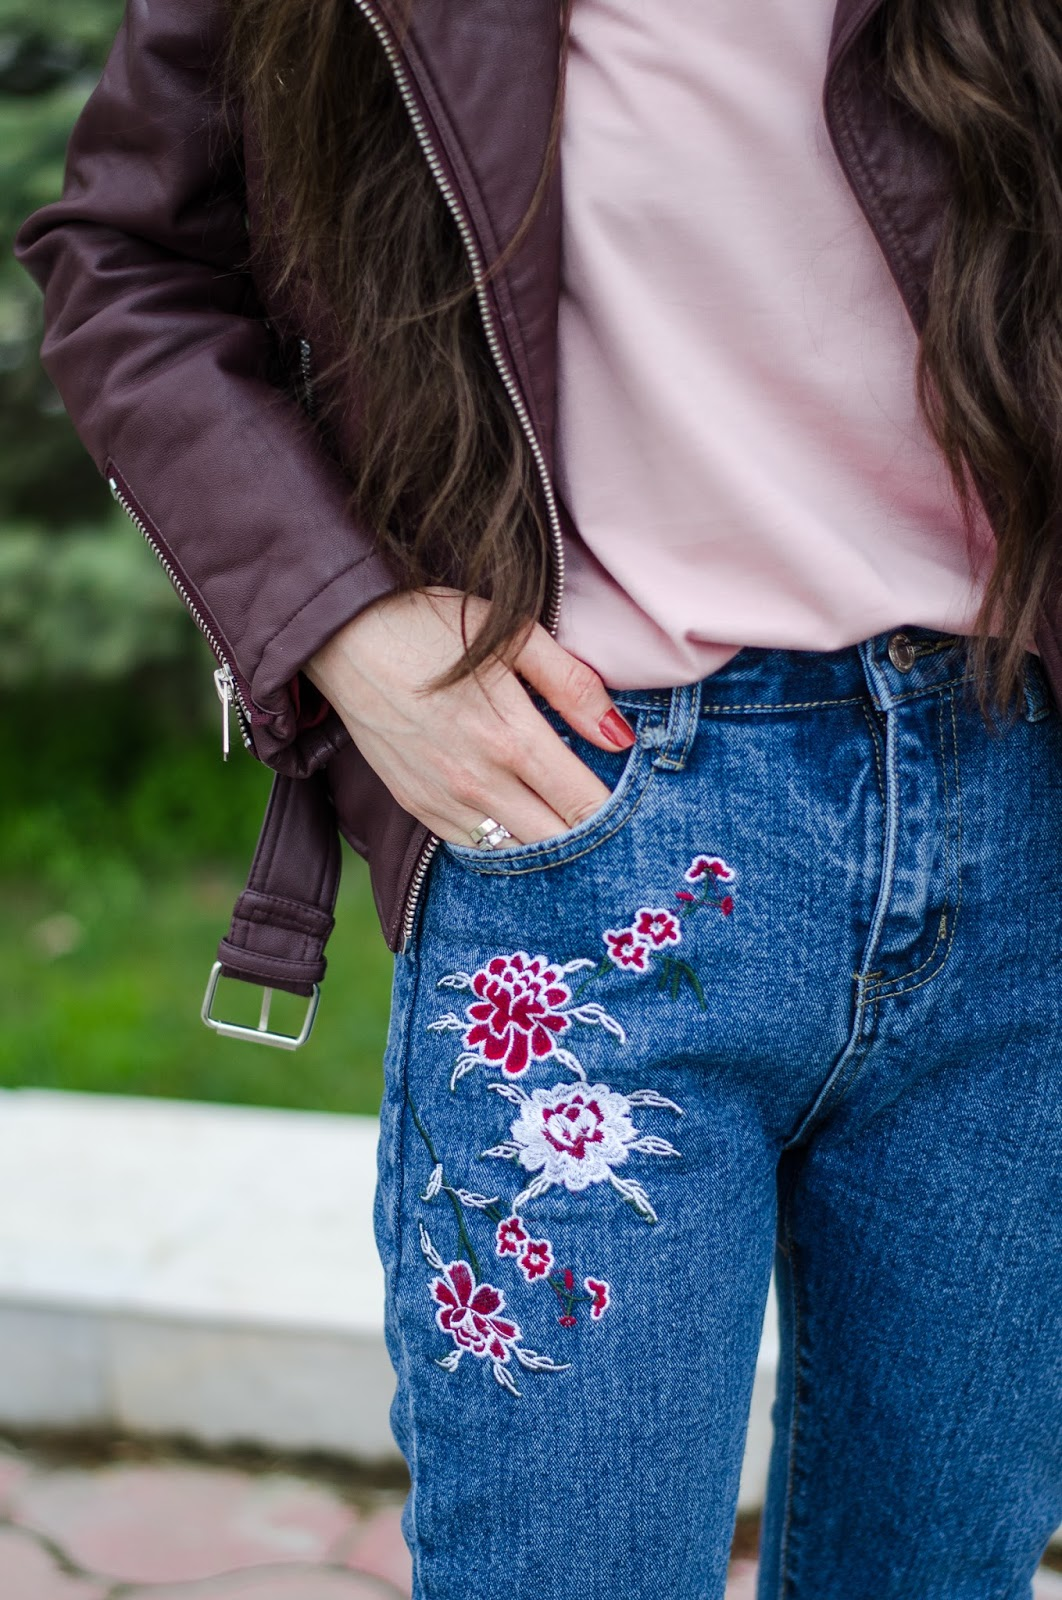 fashion%2Bblogger%2Bdiyorasnotes%2Bdiyora%2Bbeta%2Boutfitoftheday%2Bstreetstyle%2Bbaseball%2Bhat%2Bleather%2Bjacket%2Bembroidery%2Bjeans%2B%2B 11 - HOW I STYLE JEANS WITH EMBROIDERY